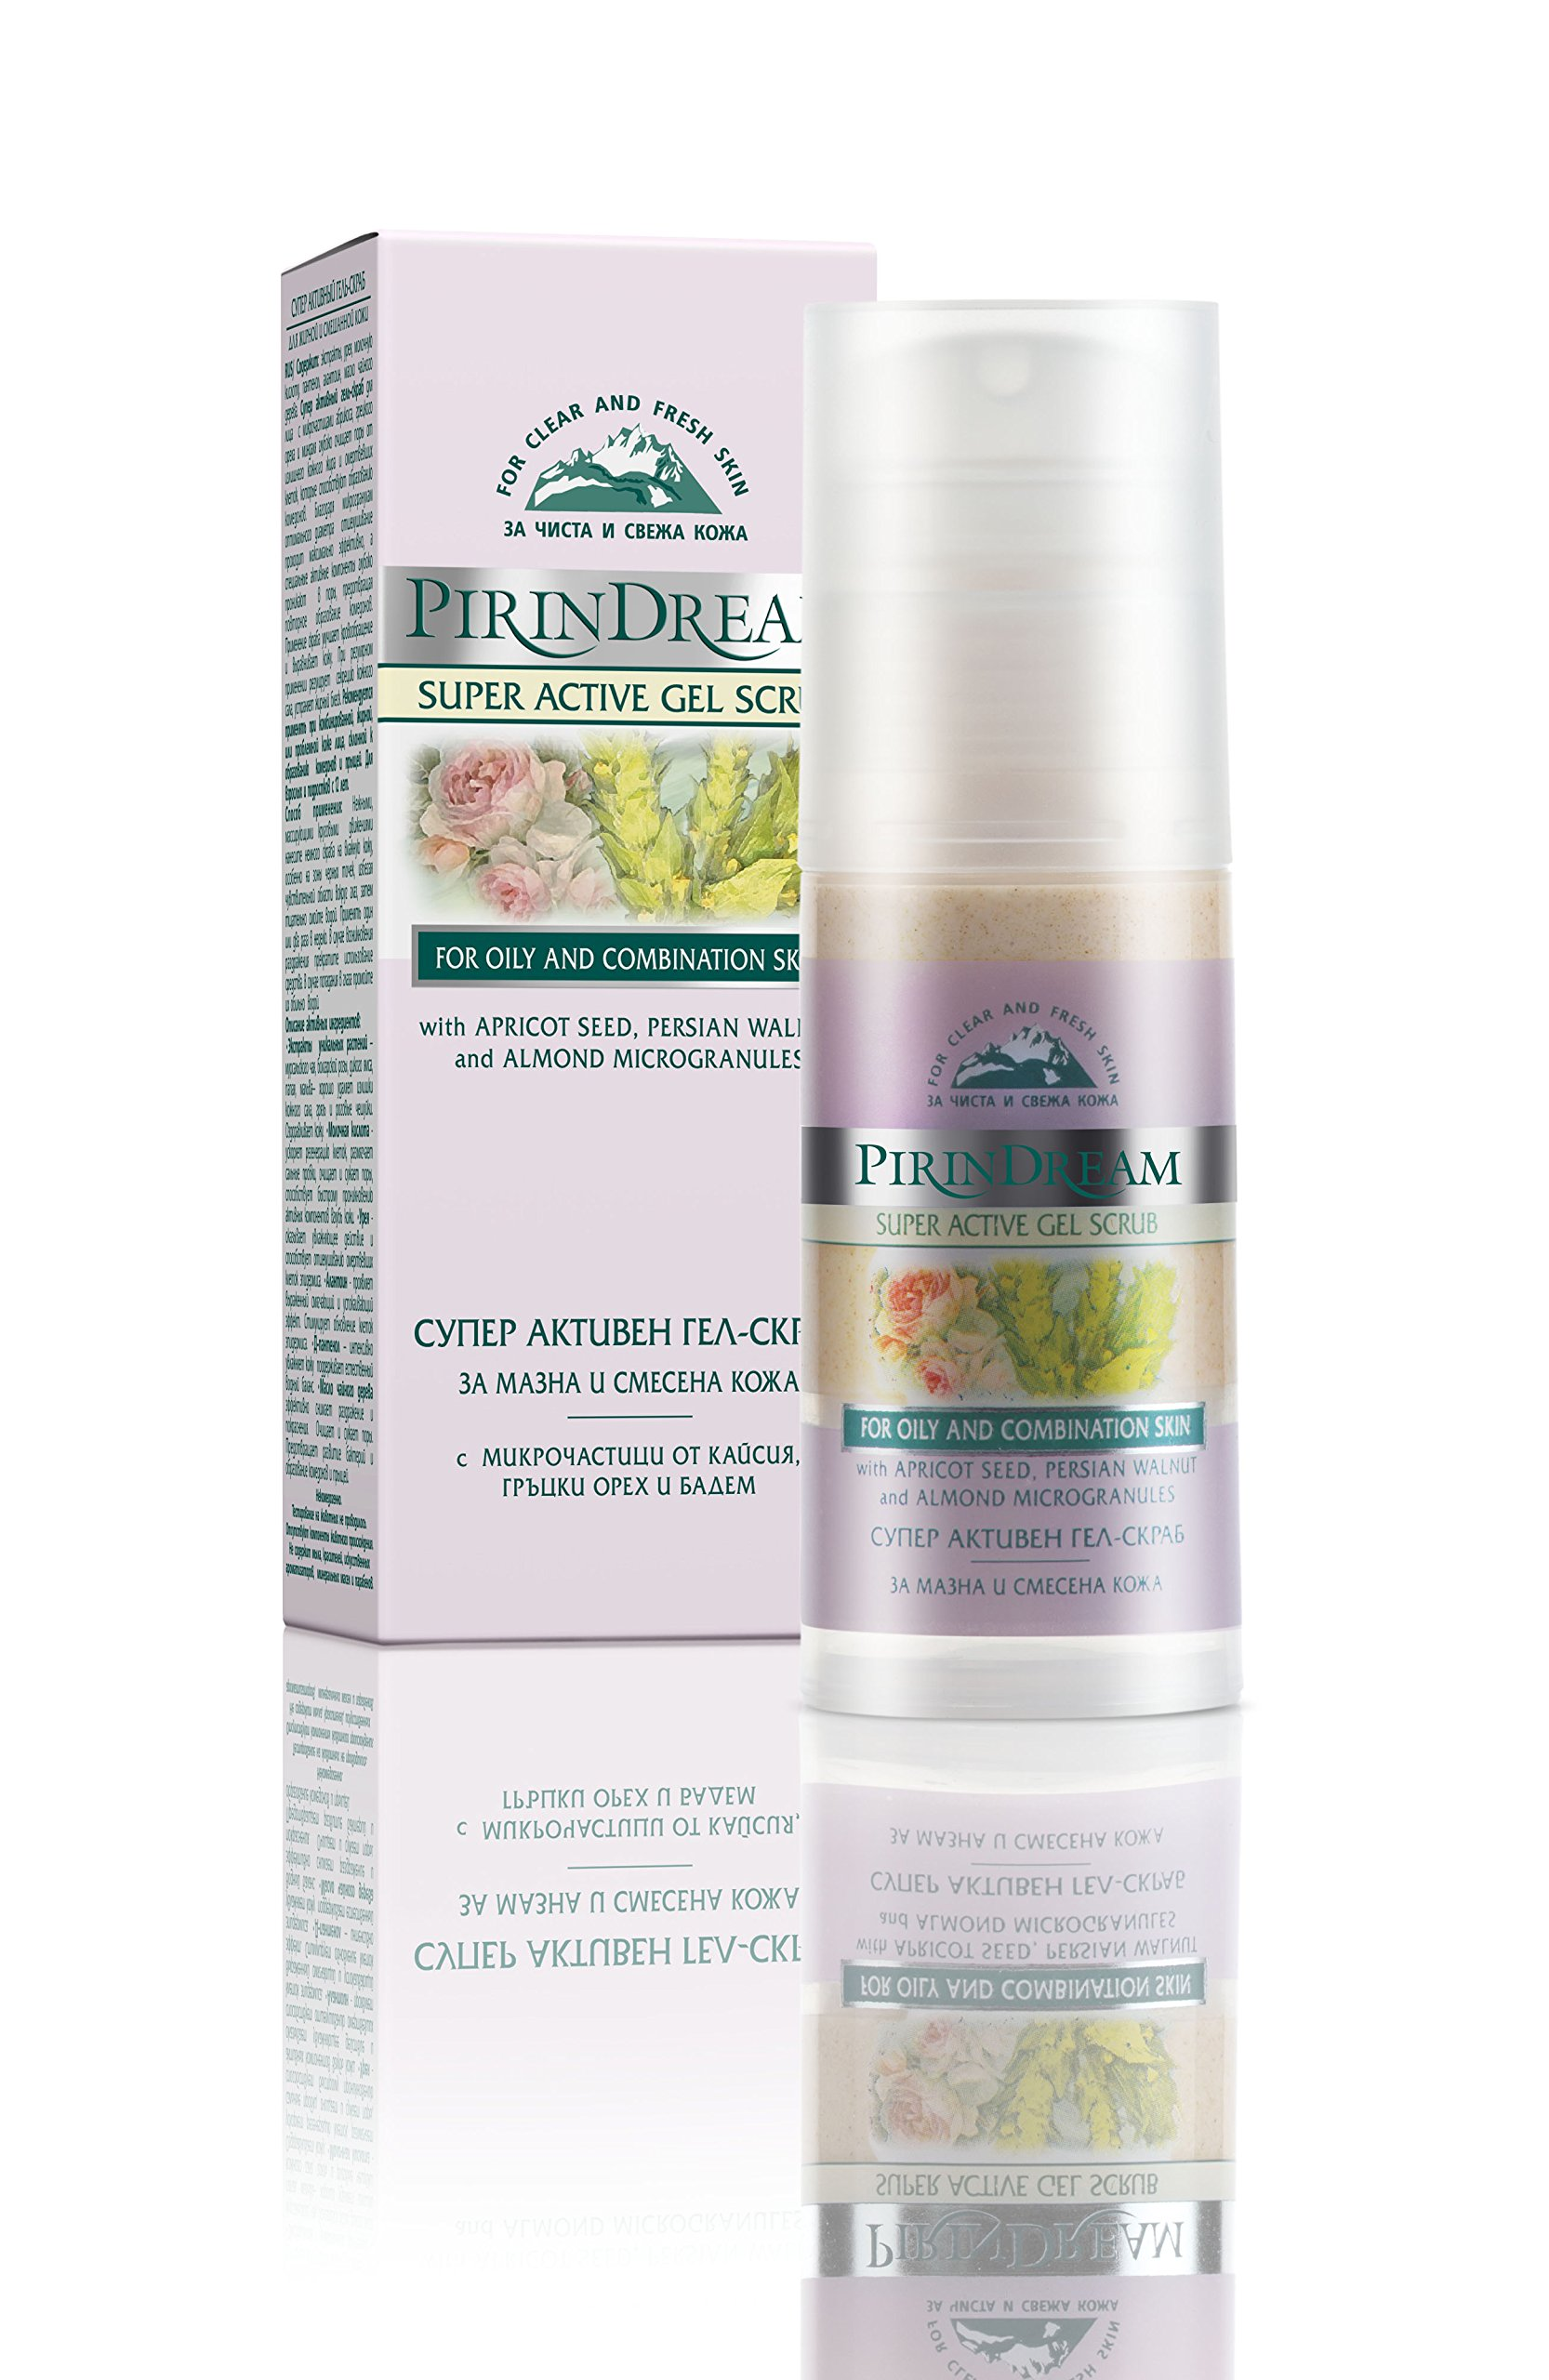 PIRIN DREAM SUPER ACTIVE GEL SCRUB for Deep Cleans Pores * with Mursala Tea, Bulgarian Rose, Wild Yam and Tea Tree Oil * For Combination and Oily Skin